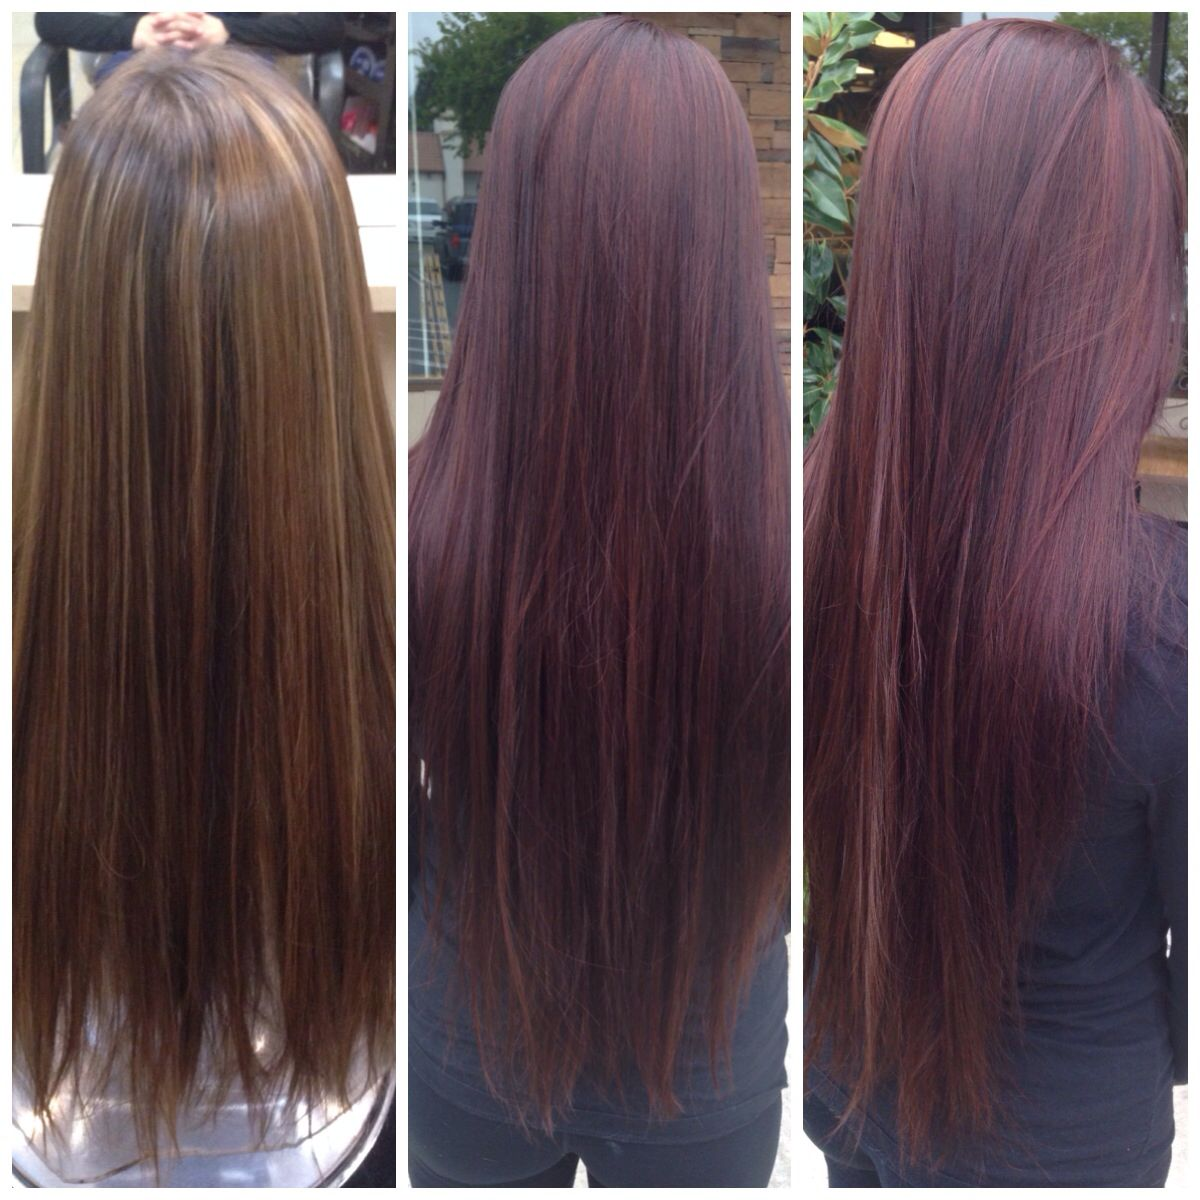 Deep Burgundy Wine Hair Color With Dark Brown Lowlights Beautiful